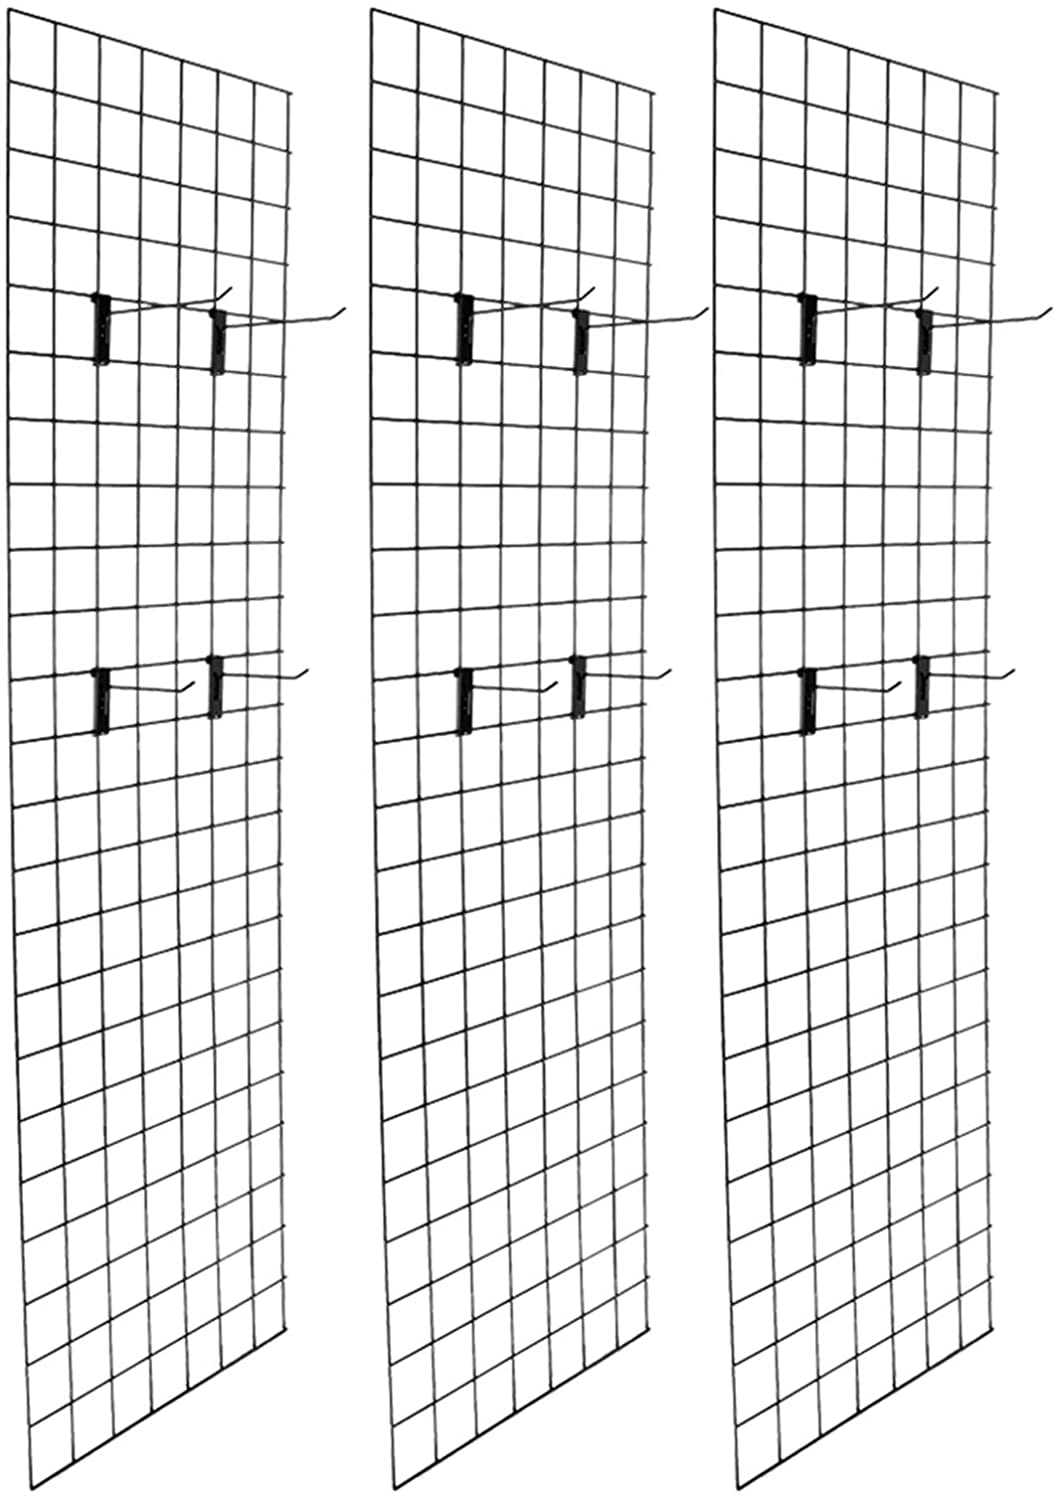 RBtoday Artisasset 3 Piece 5mm Iron Mesh Frame Black - Wire Wall Panel, Photo Wall for Photo Hanging Hat Display Metal Wall Storage